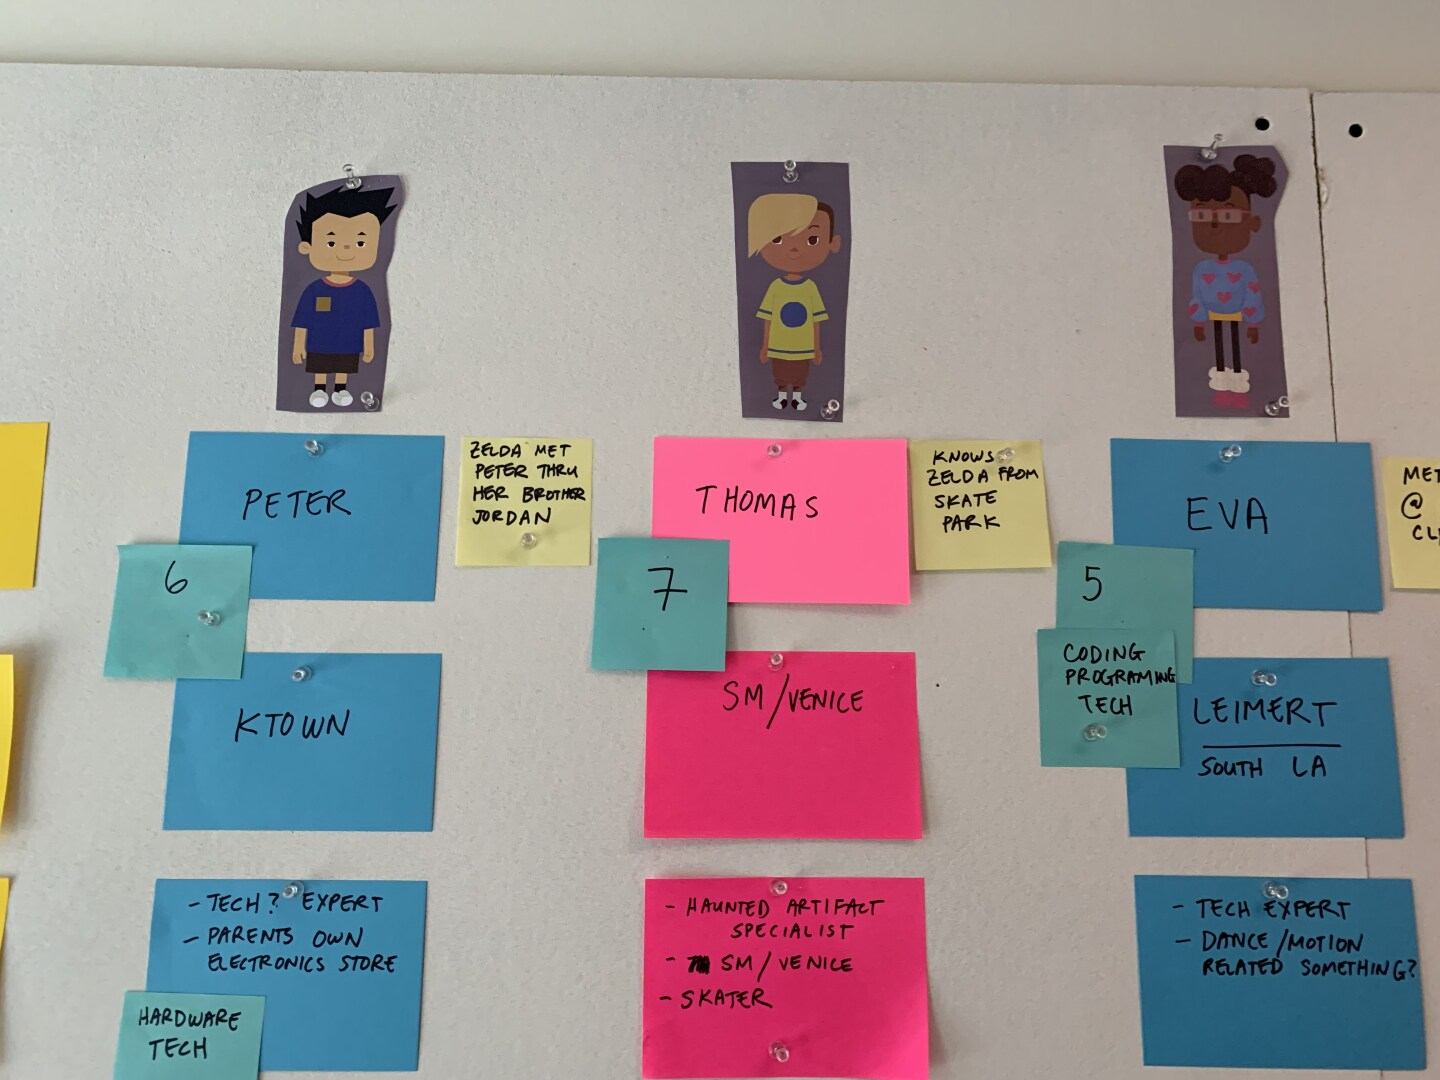 """Post-its line up below animated characters included in """"City of Ghosts."""""""